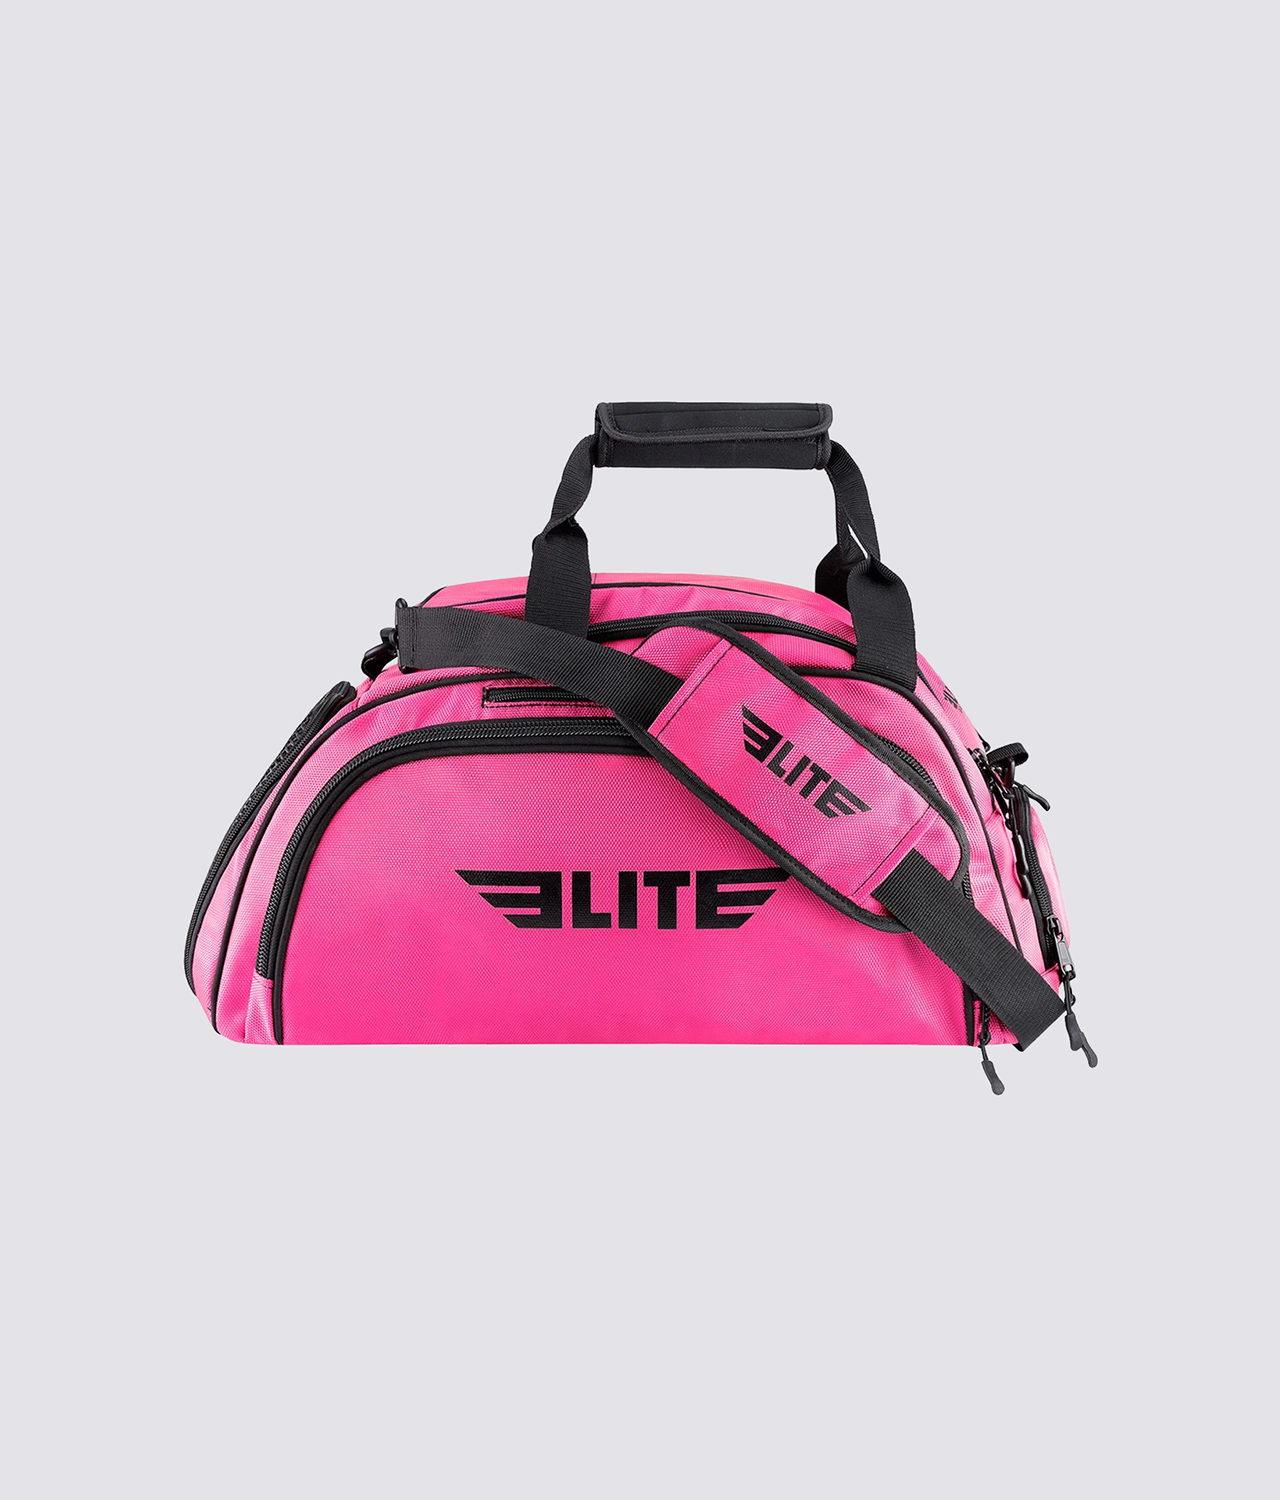 Elite Sports Warrior Series Pink Large Duffel Muay Thai Gear Gym Bag & Backpack